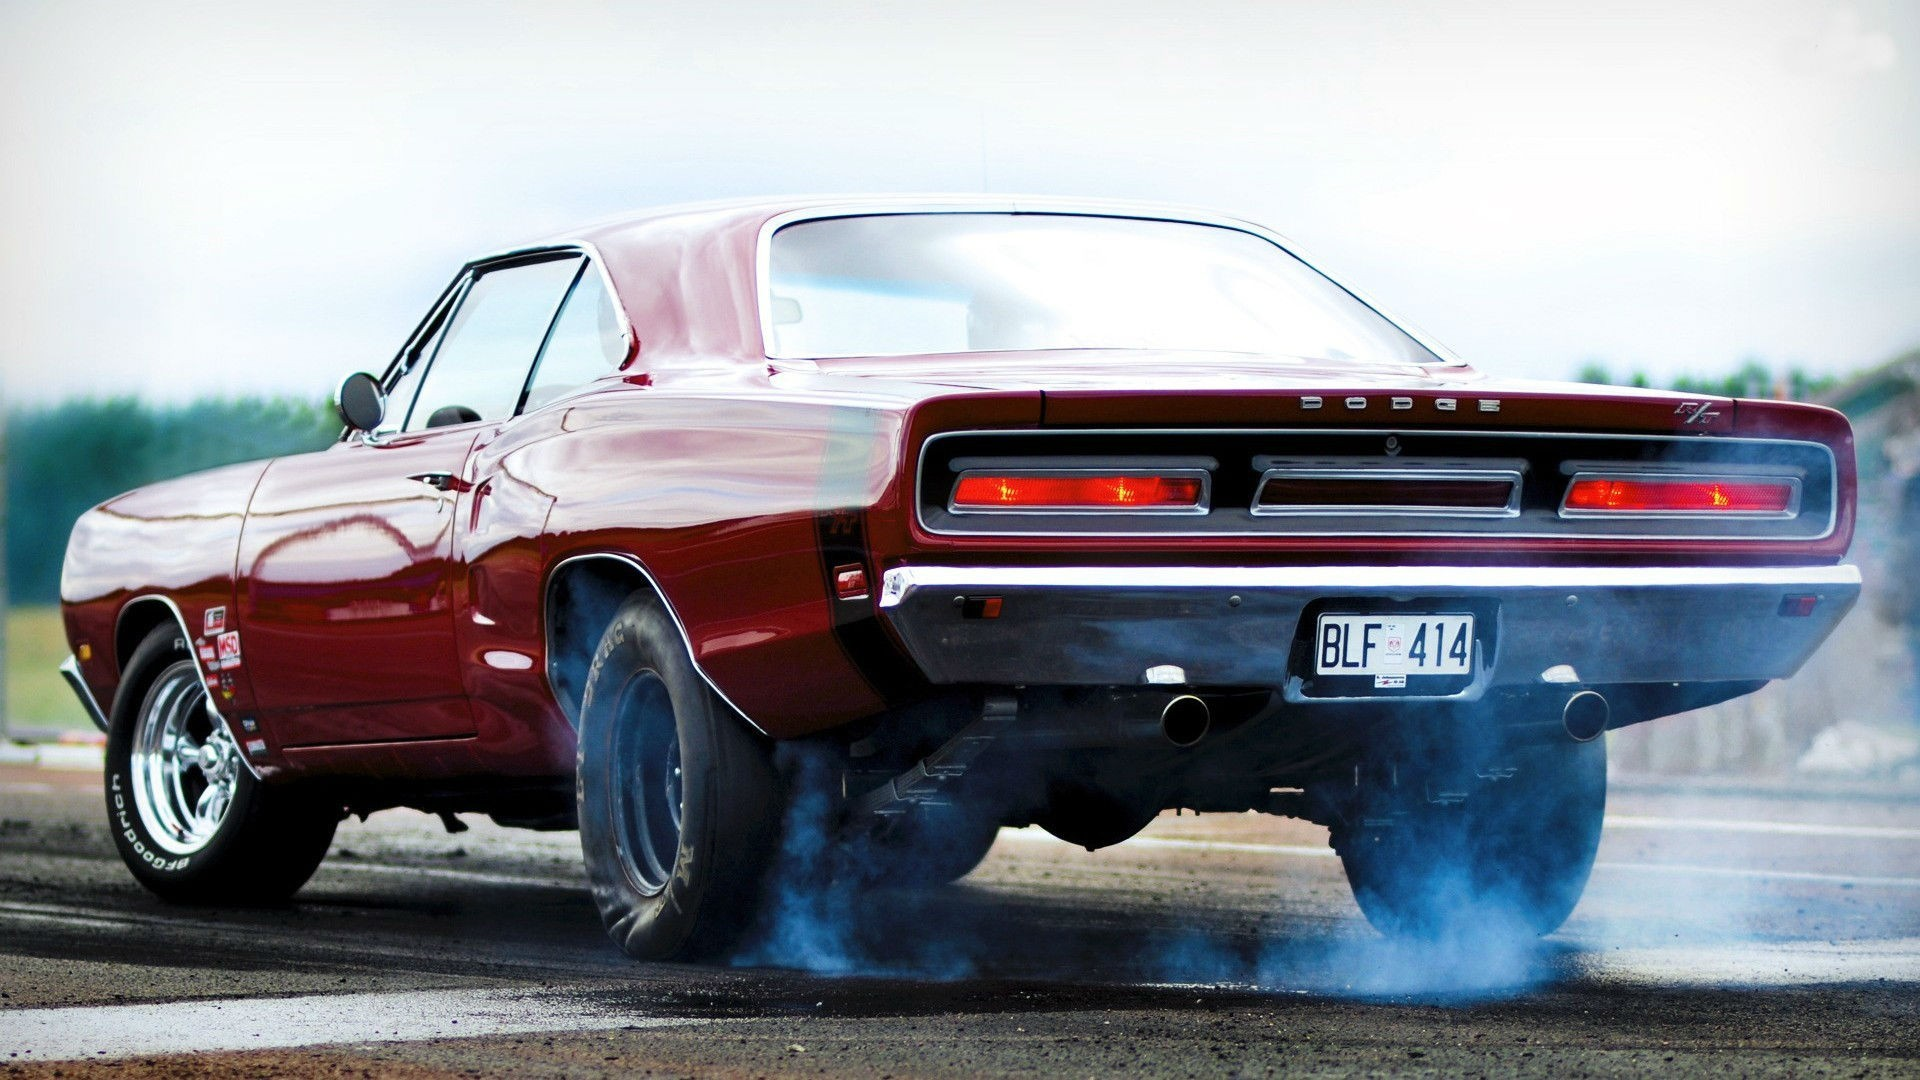 Hd muscle car wallpapers for mobile